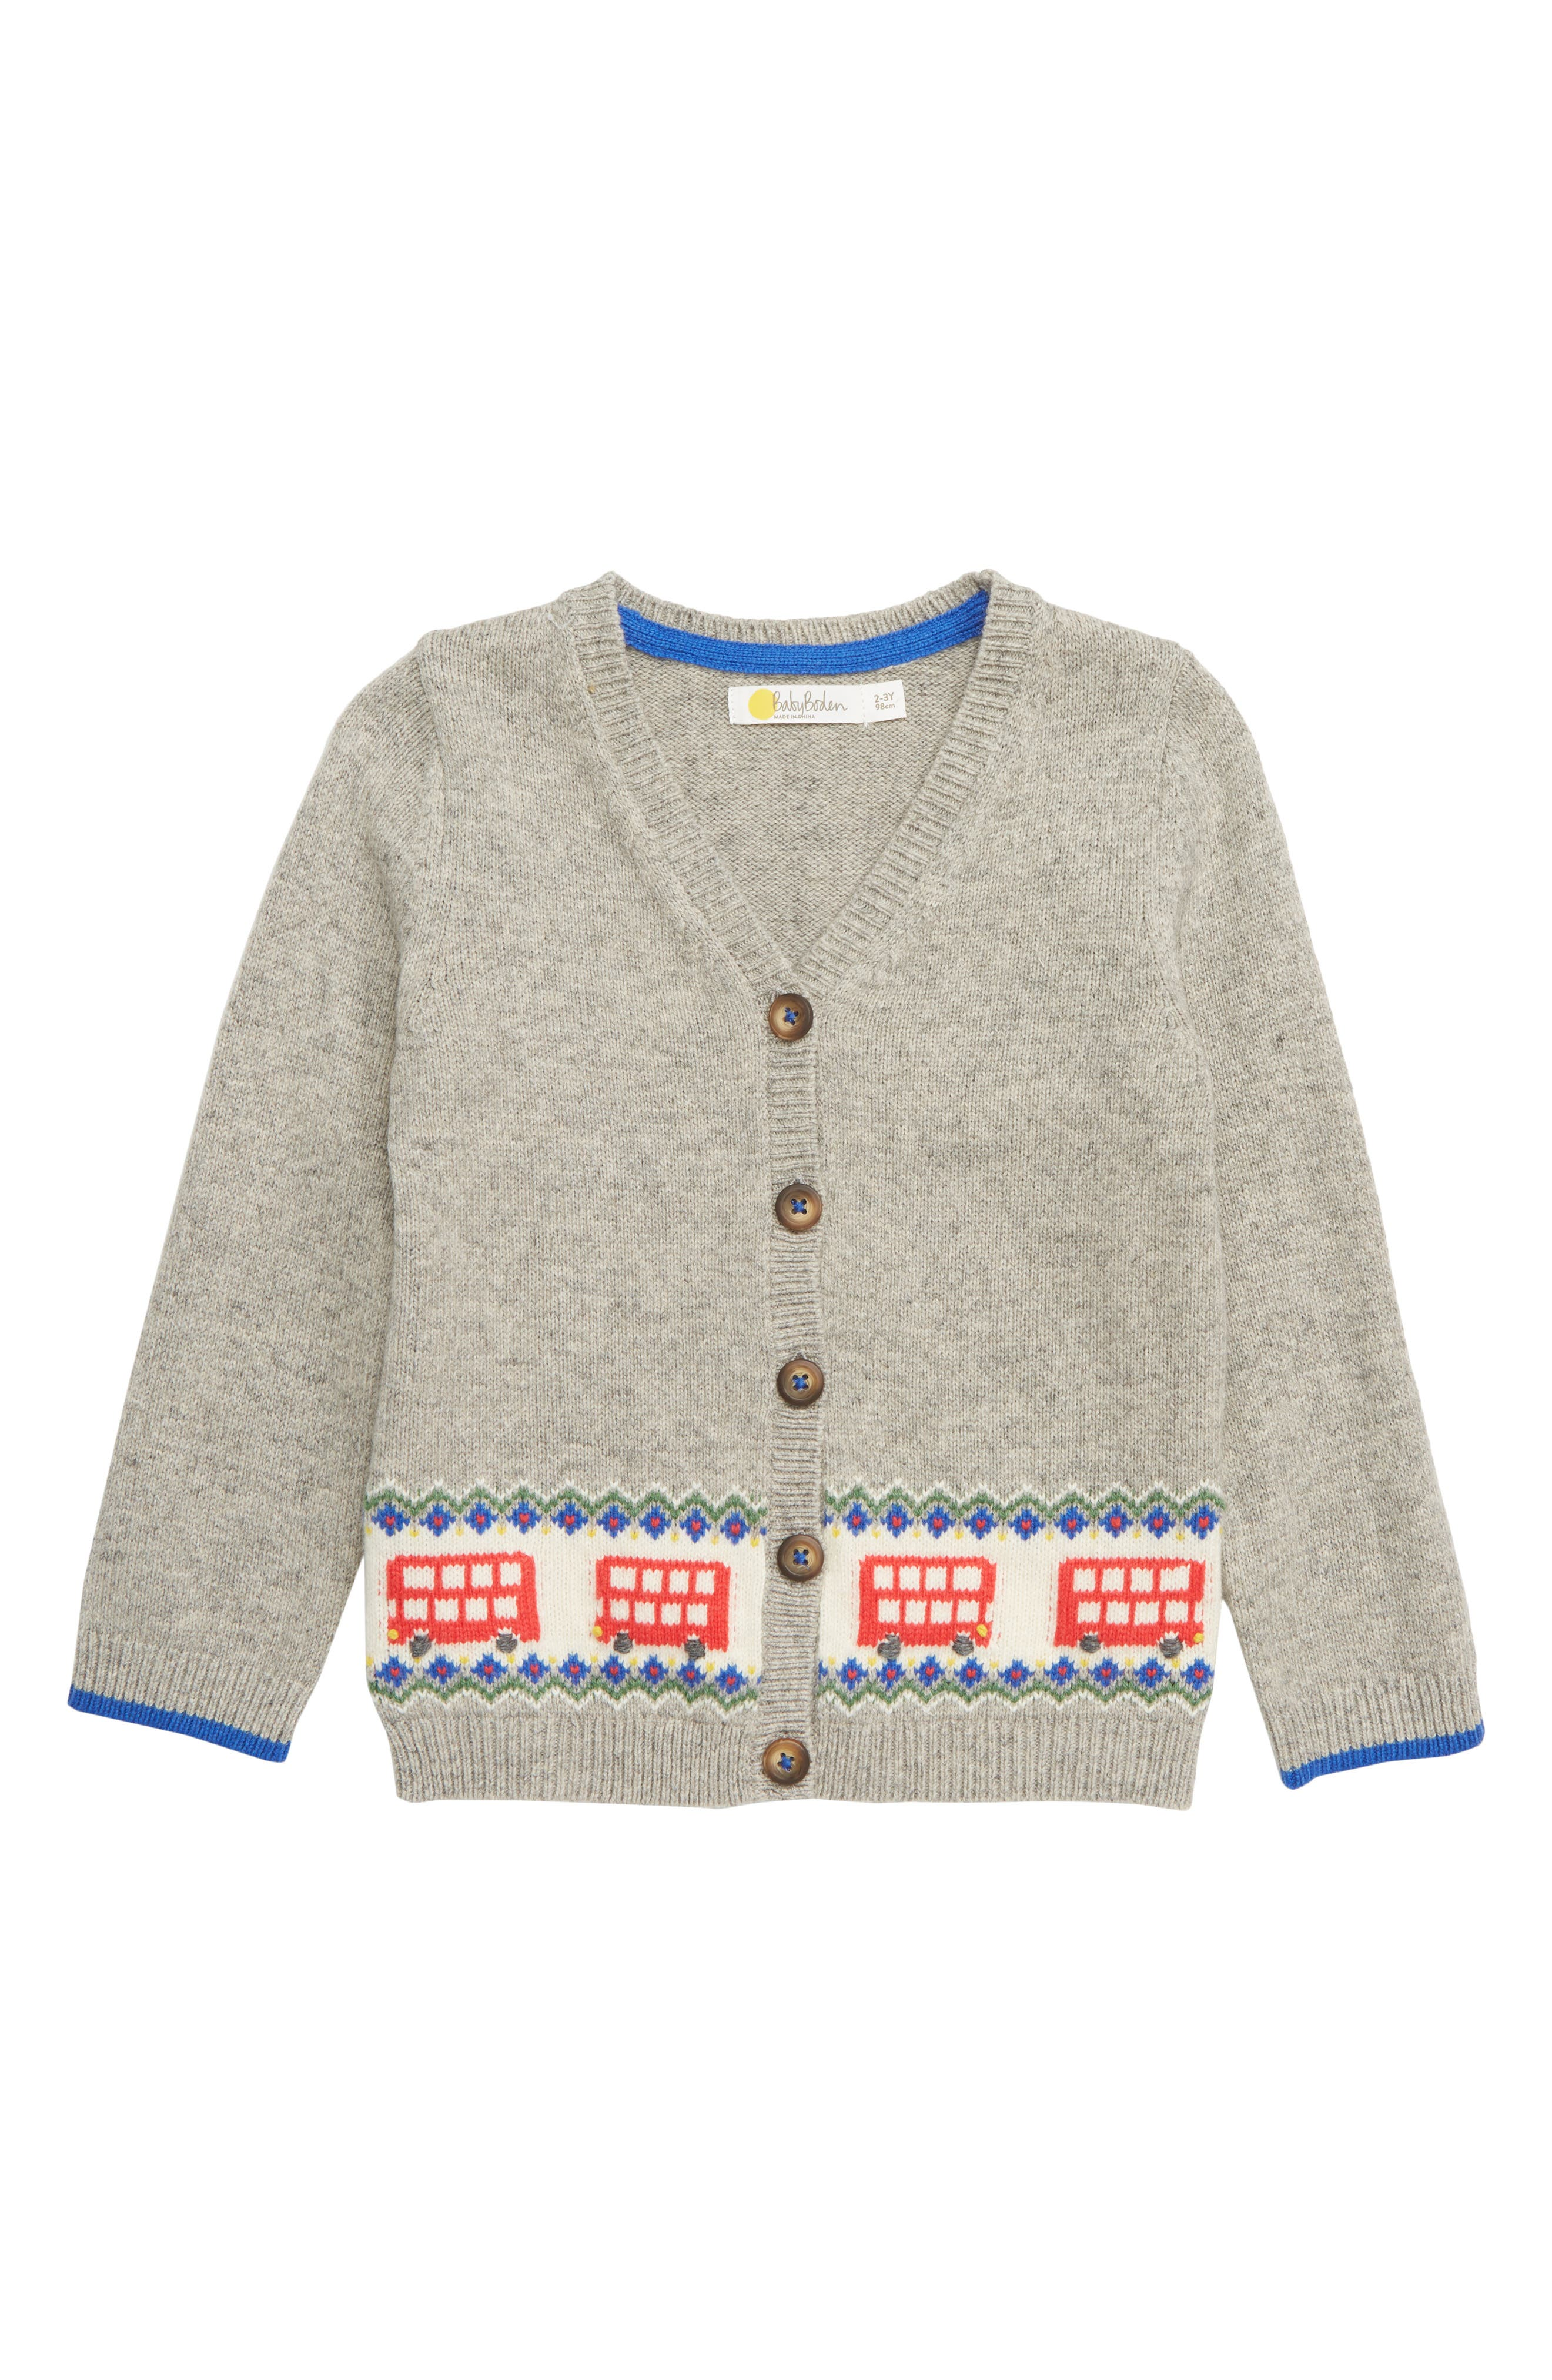 MINI BODEN Buses Fair Isle Cardigan, Main, color, GRY GREY MARL BUSES